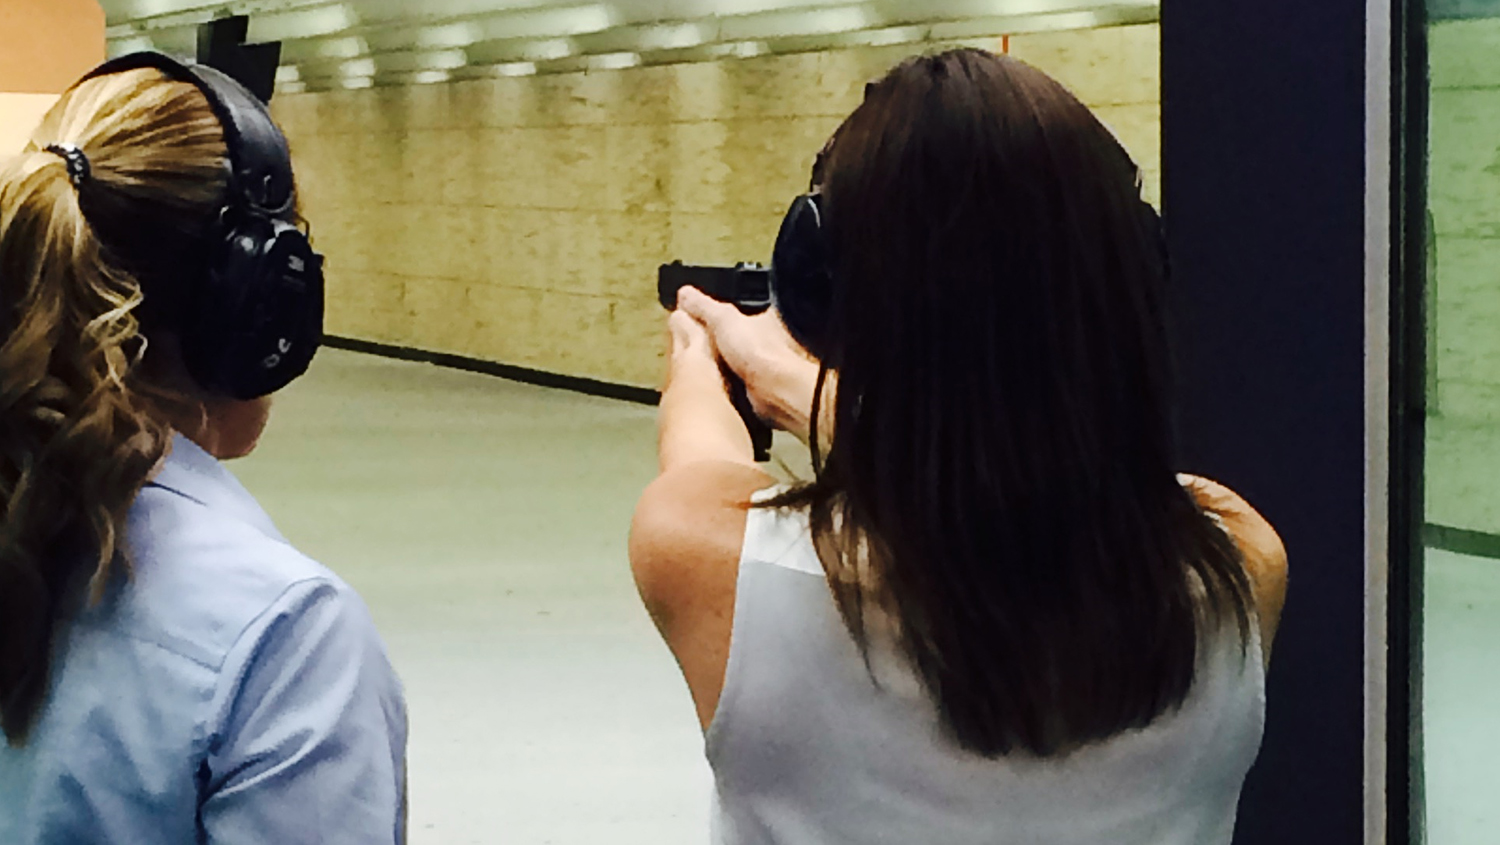 Lessons From the Gun Range - With Love From A Beginner